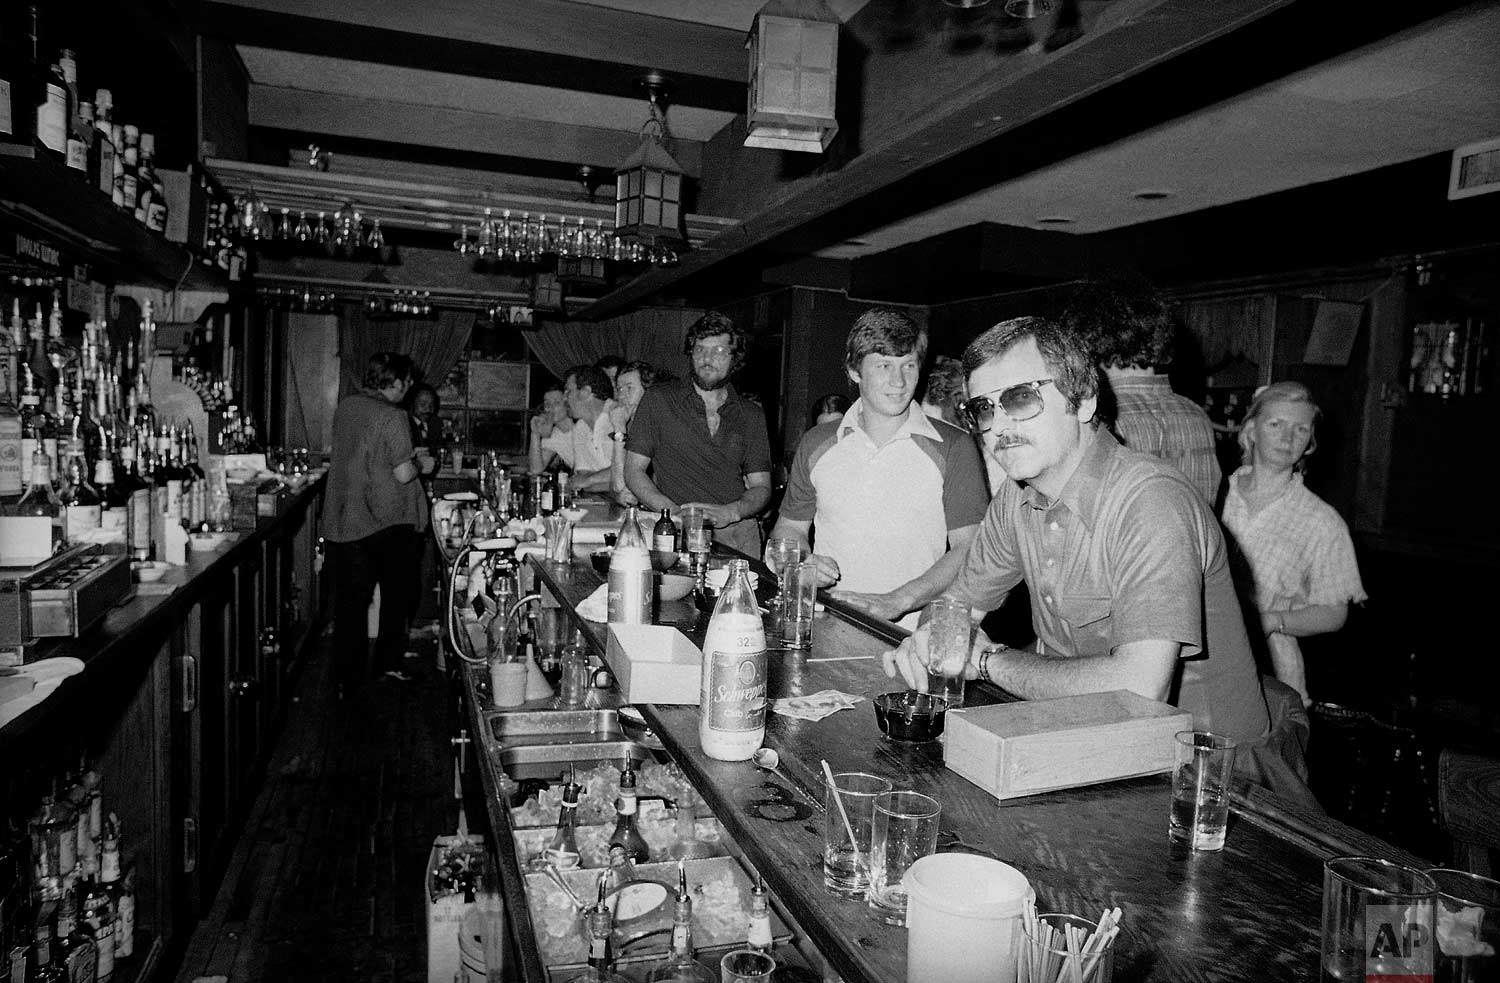 People in a midtown Manhattan bar keep drinking by candlelight in New York on Wednesday, July 13, 1977 after the city was struck by a power failure. (AP Photo/Steve Oualline)